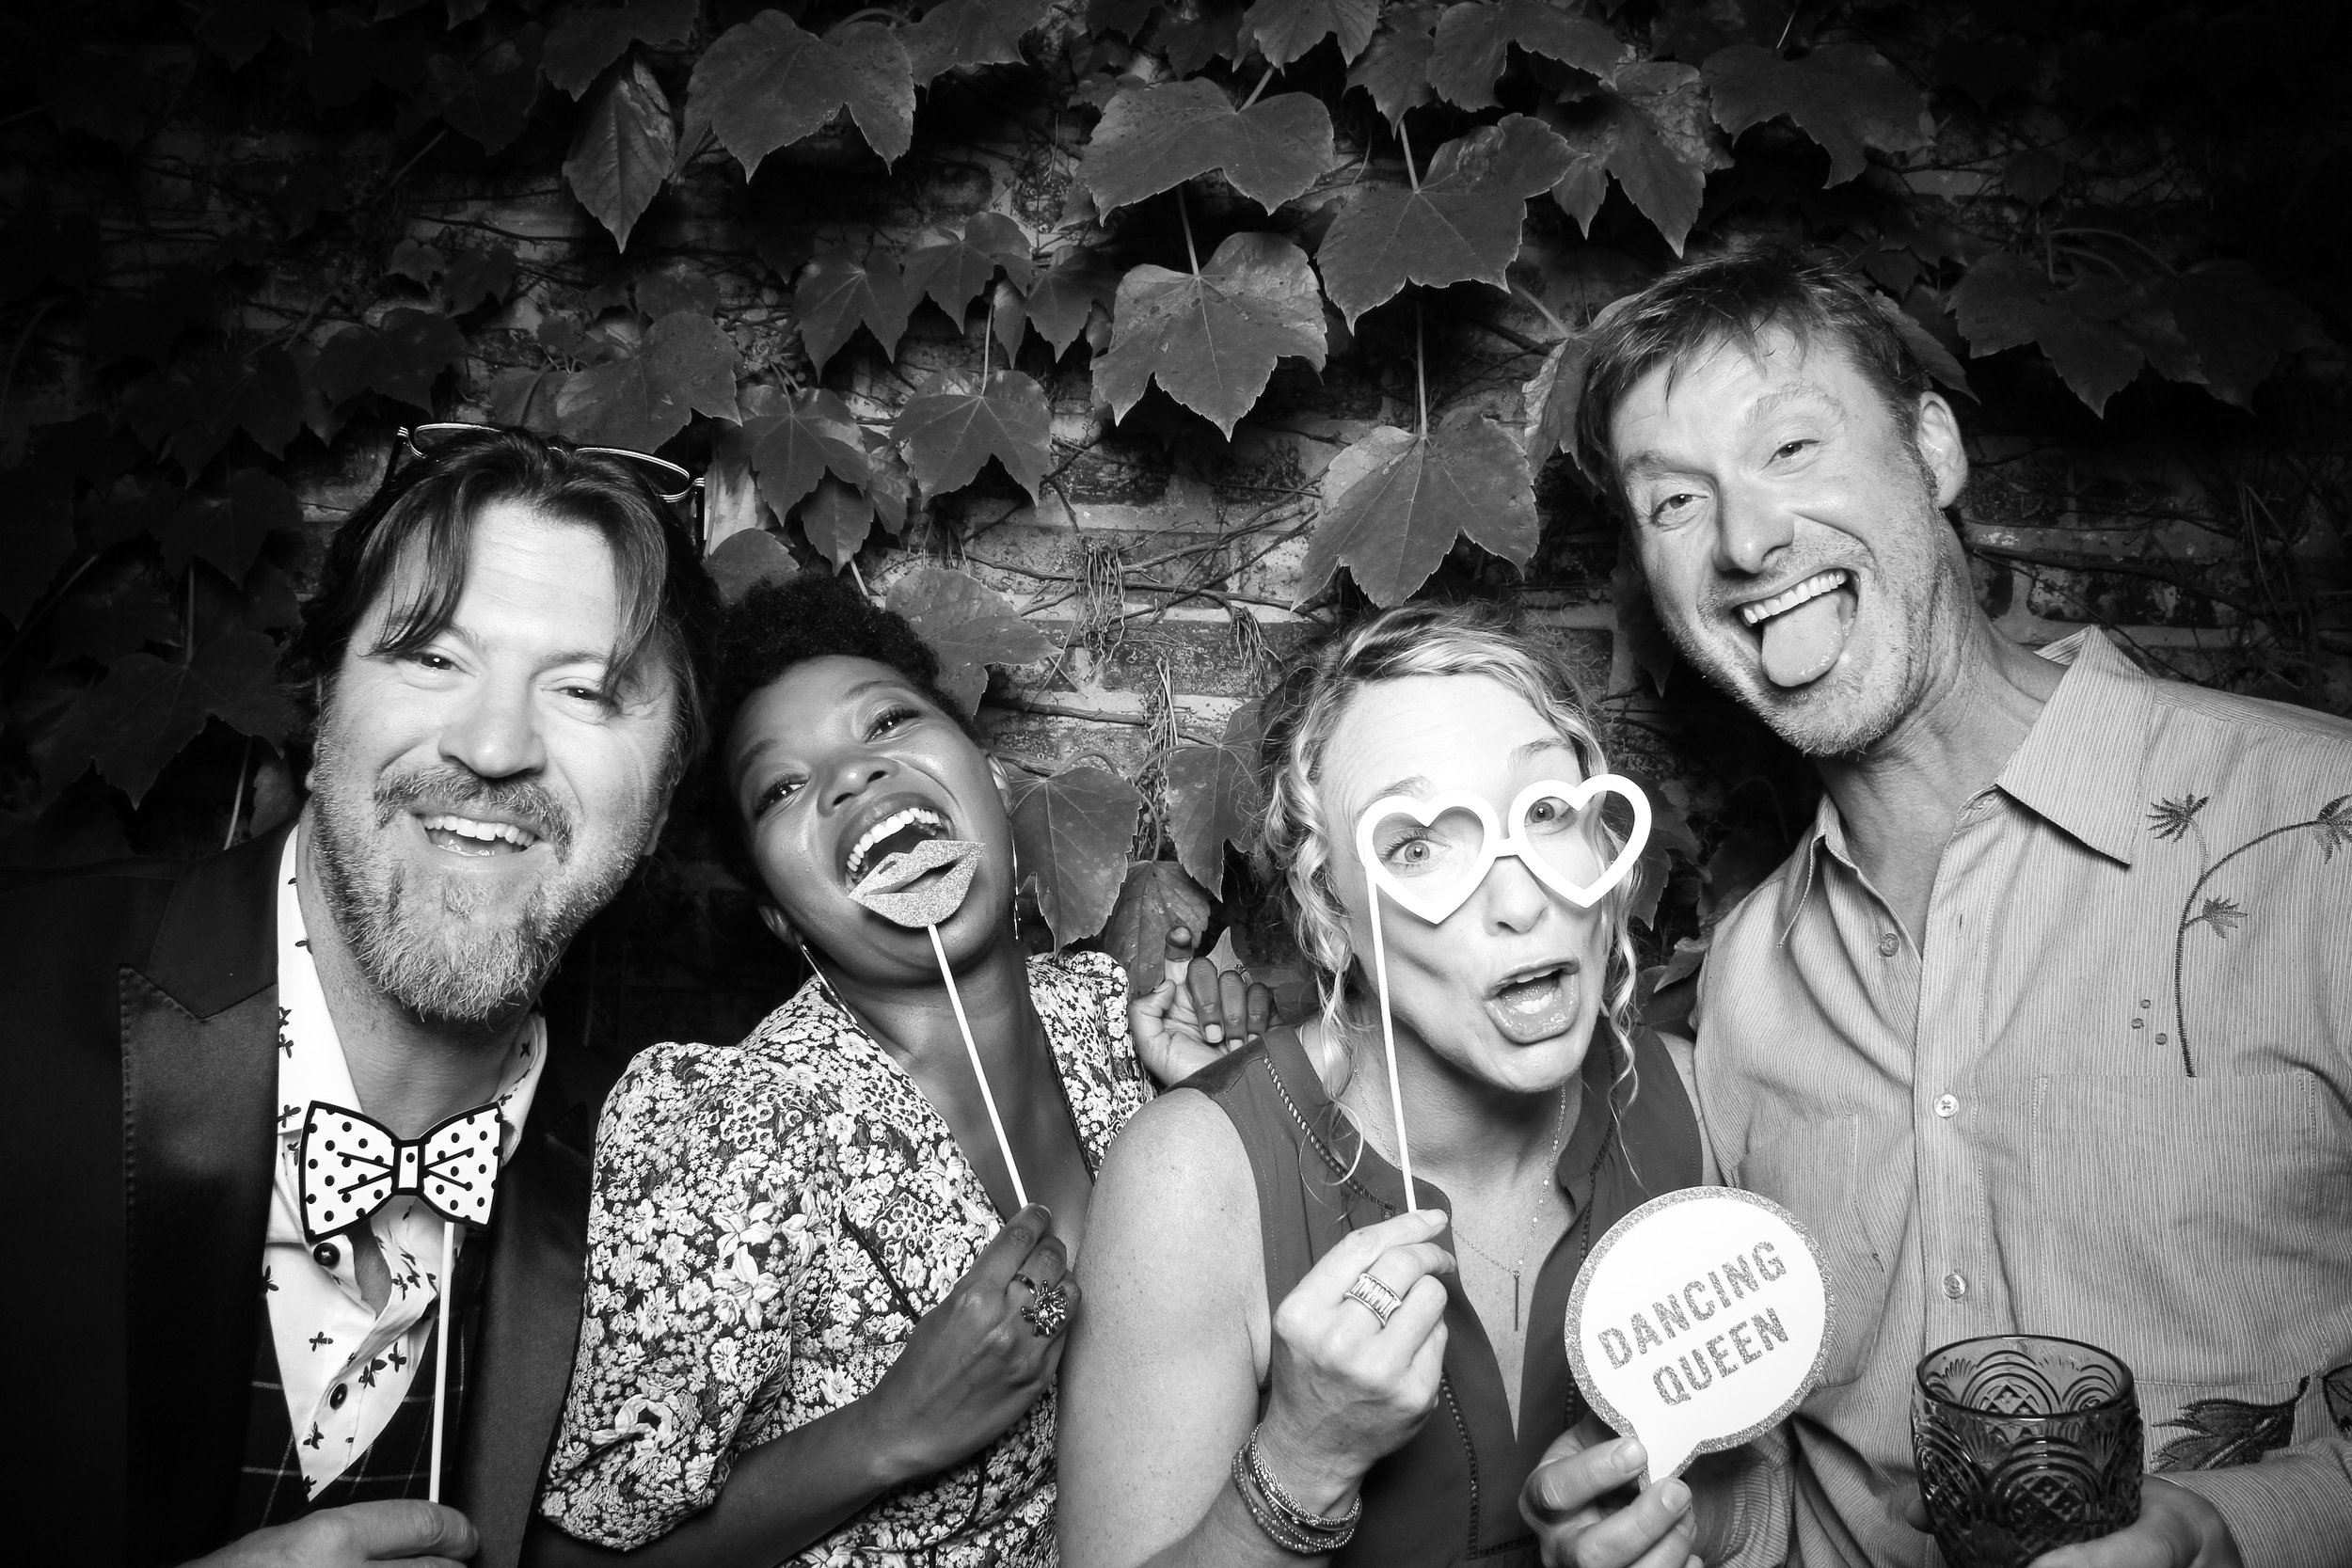 Chicago_Vintage_Wedding_Photobooth_Firehouse_03.jpg